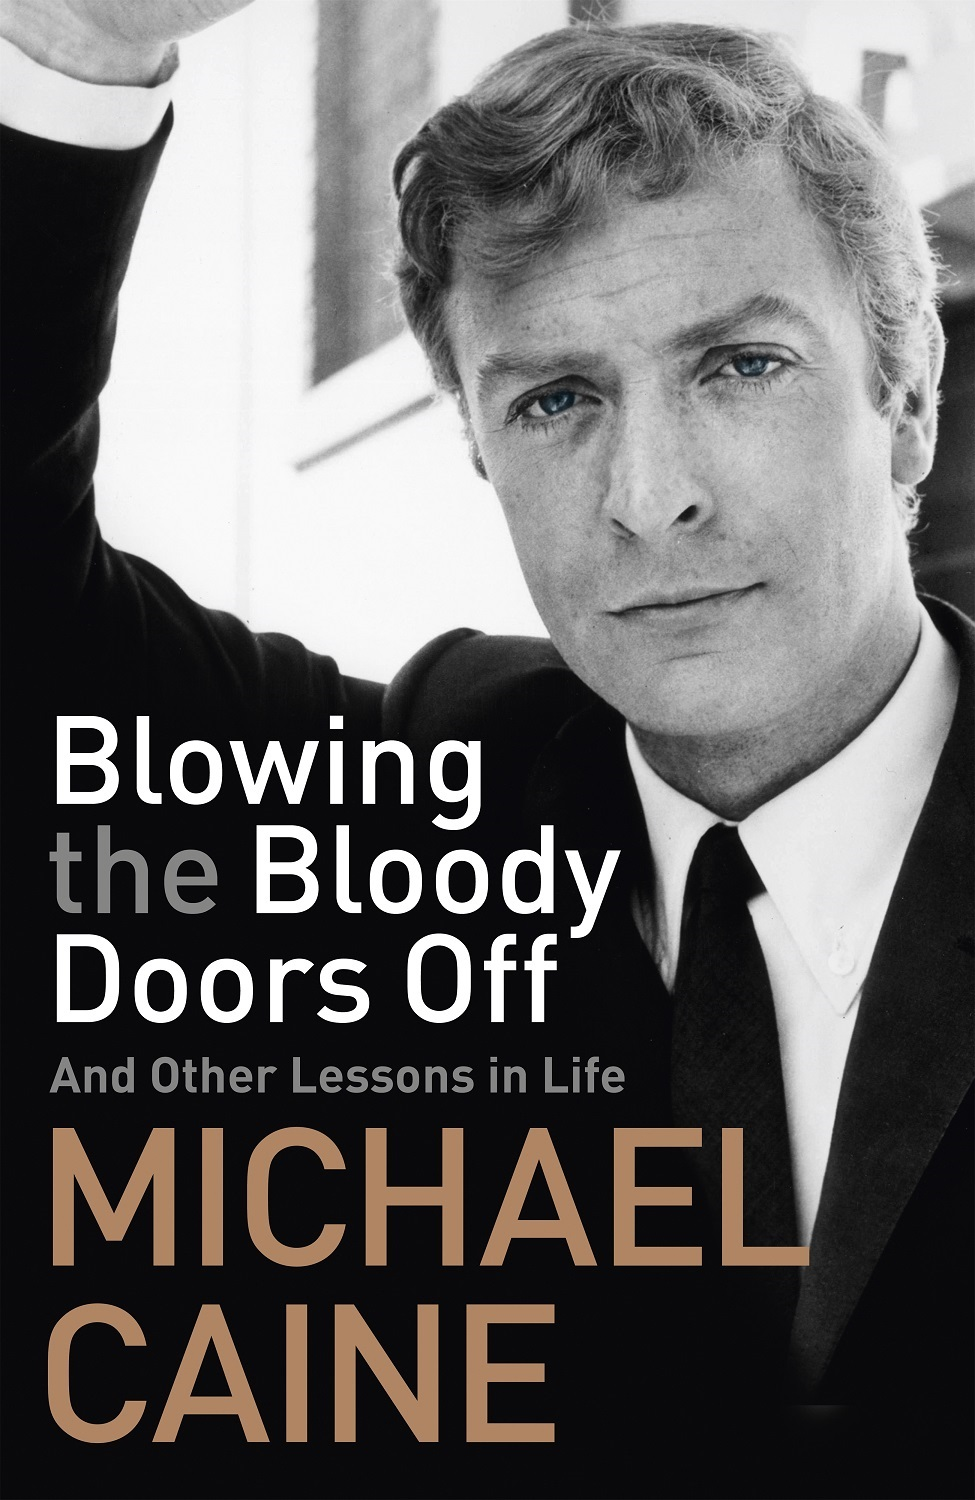 Michael Caine - Blow the Bloody Doors Off